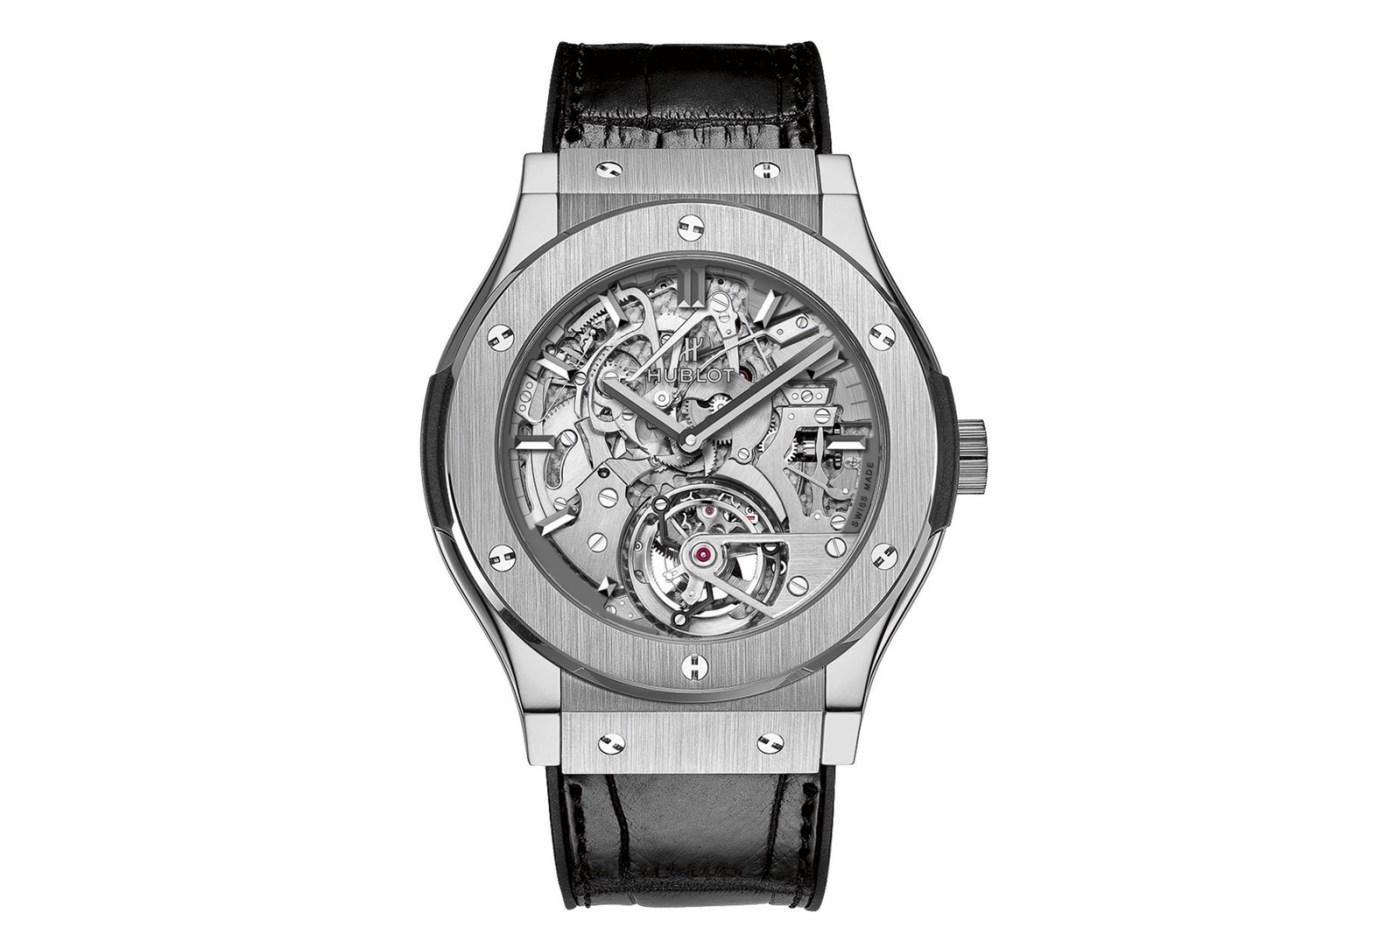 Hublot Classic Fusion Cathedral Tourbillon Minute Repeater GPHG